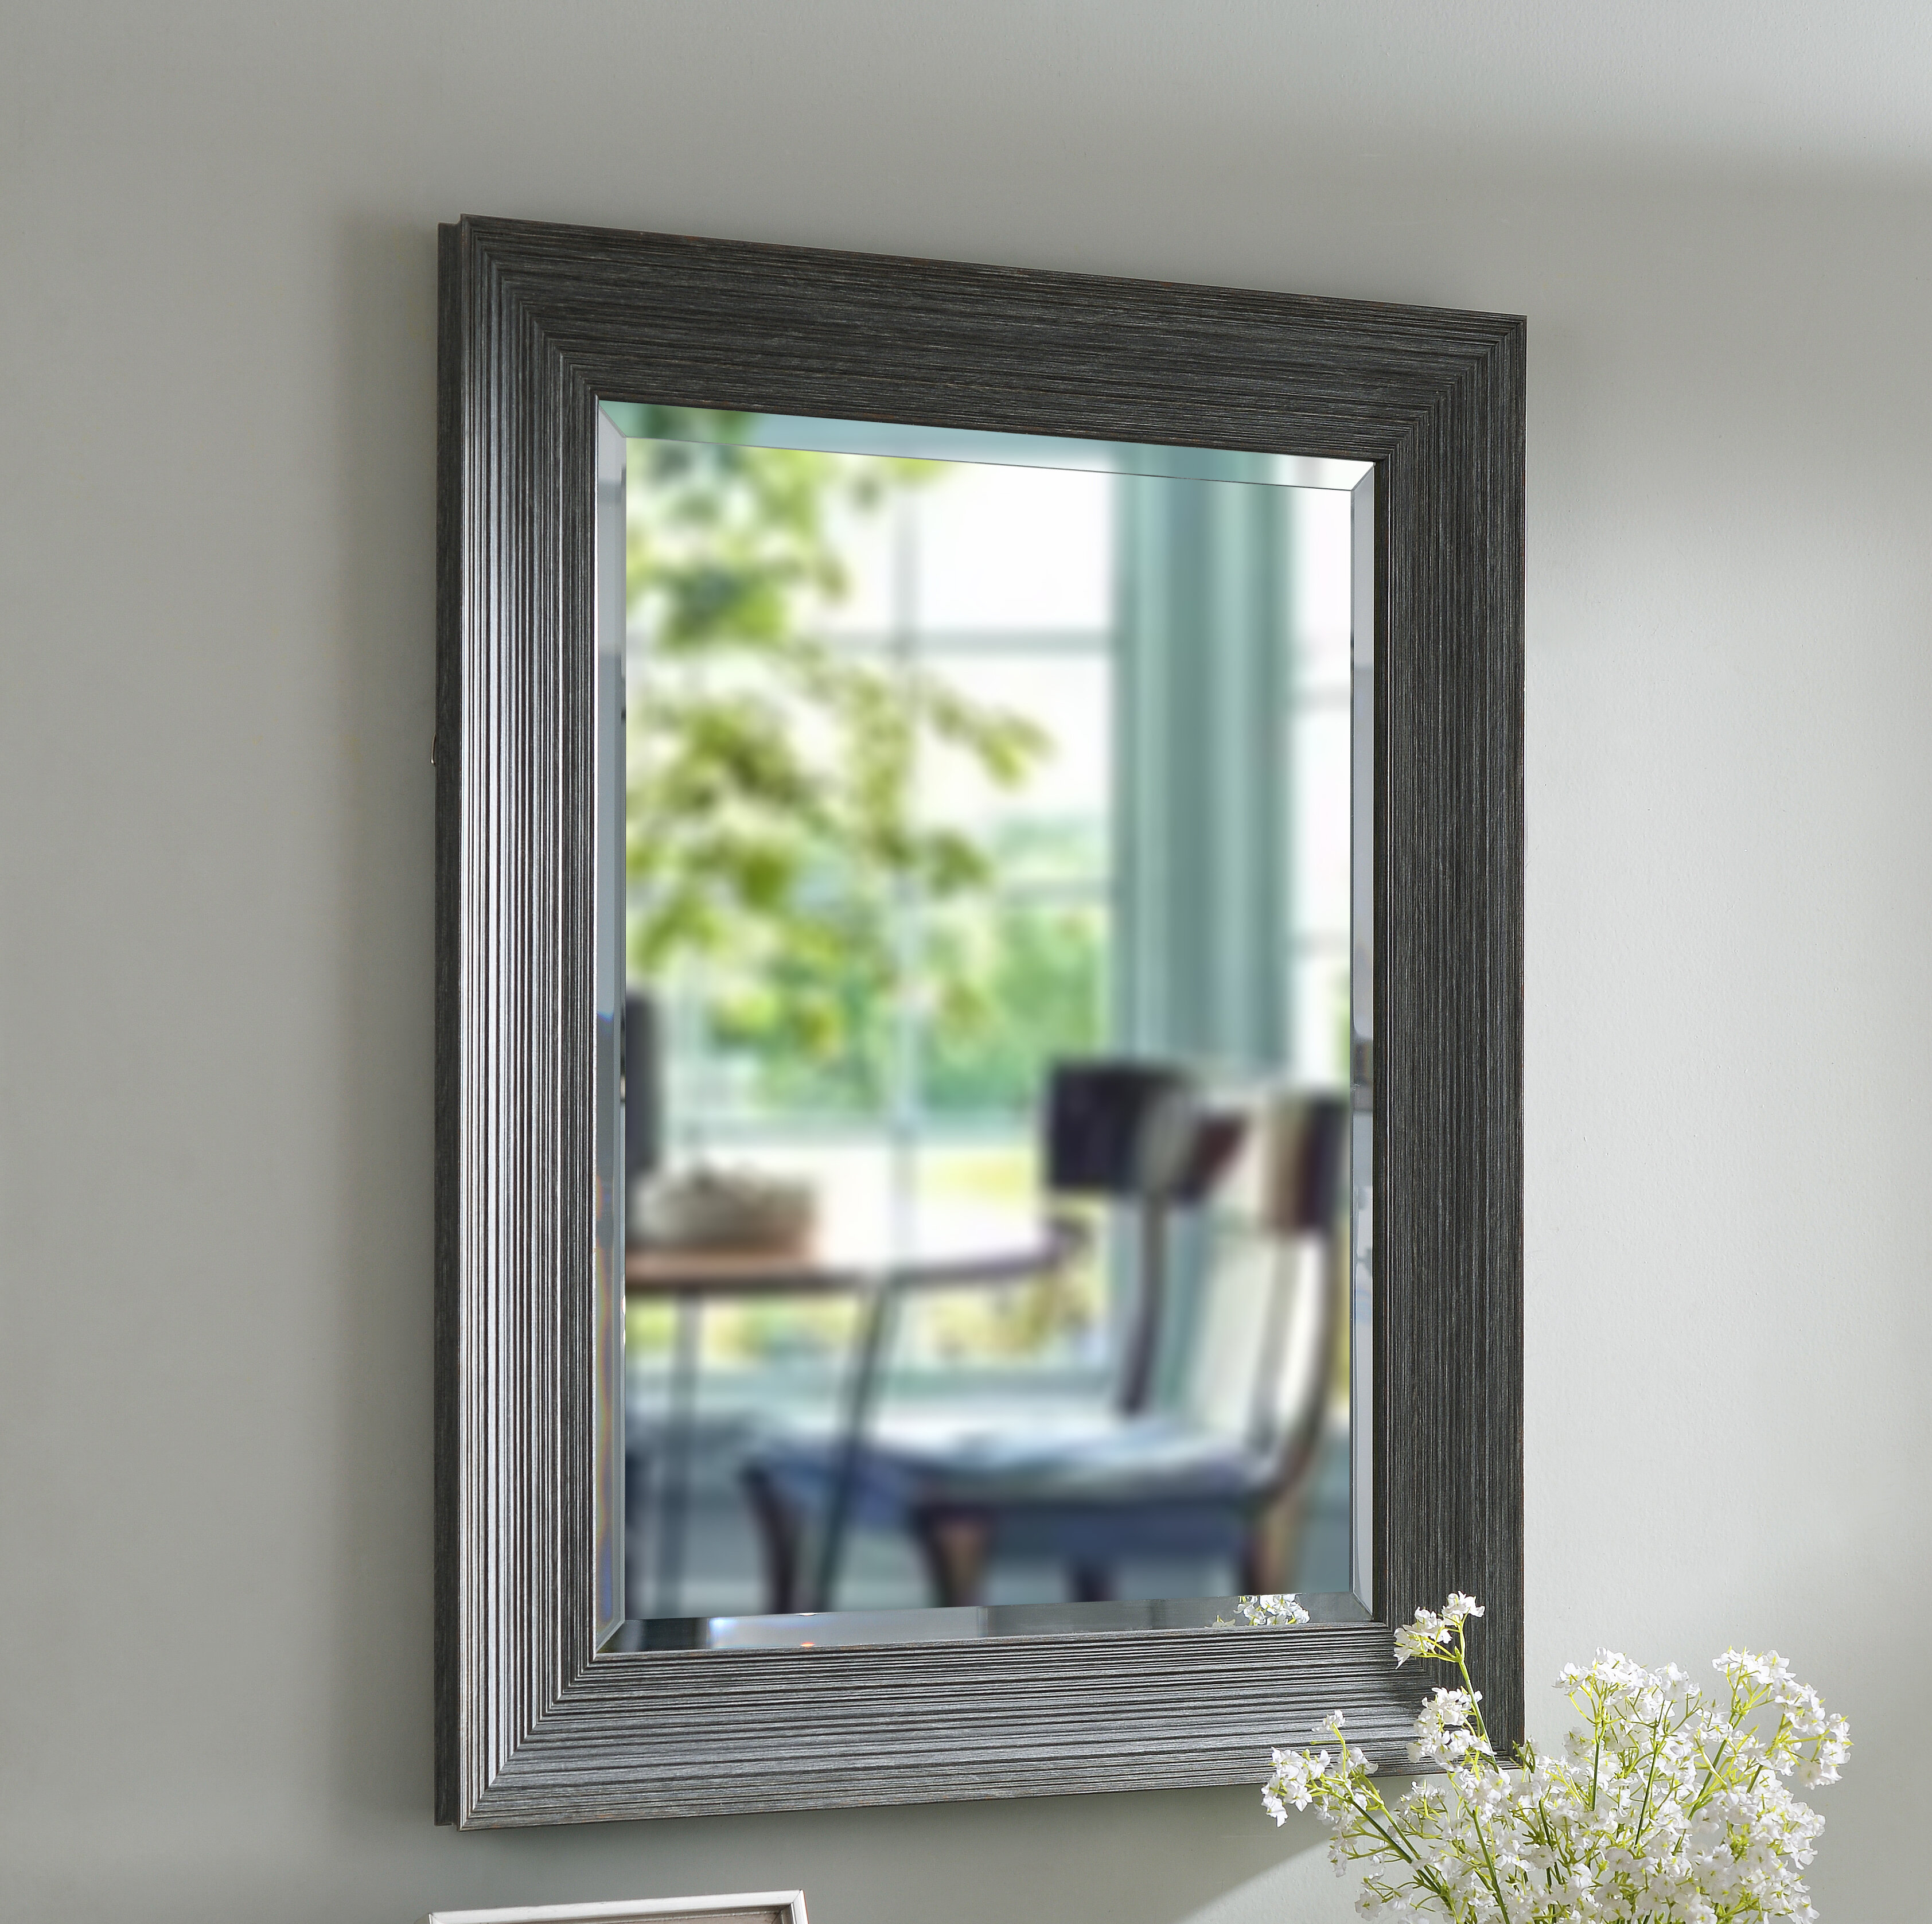 Shabby Elegance Mirror | Wayfair Throughout Epinal Shabby Elegance Wall Mirrors (View 22 of 30)